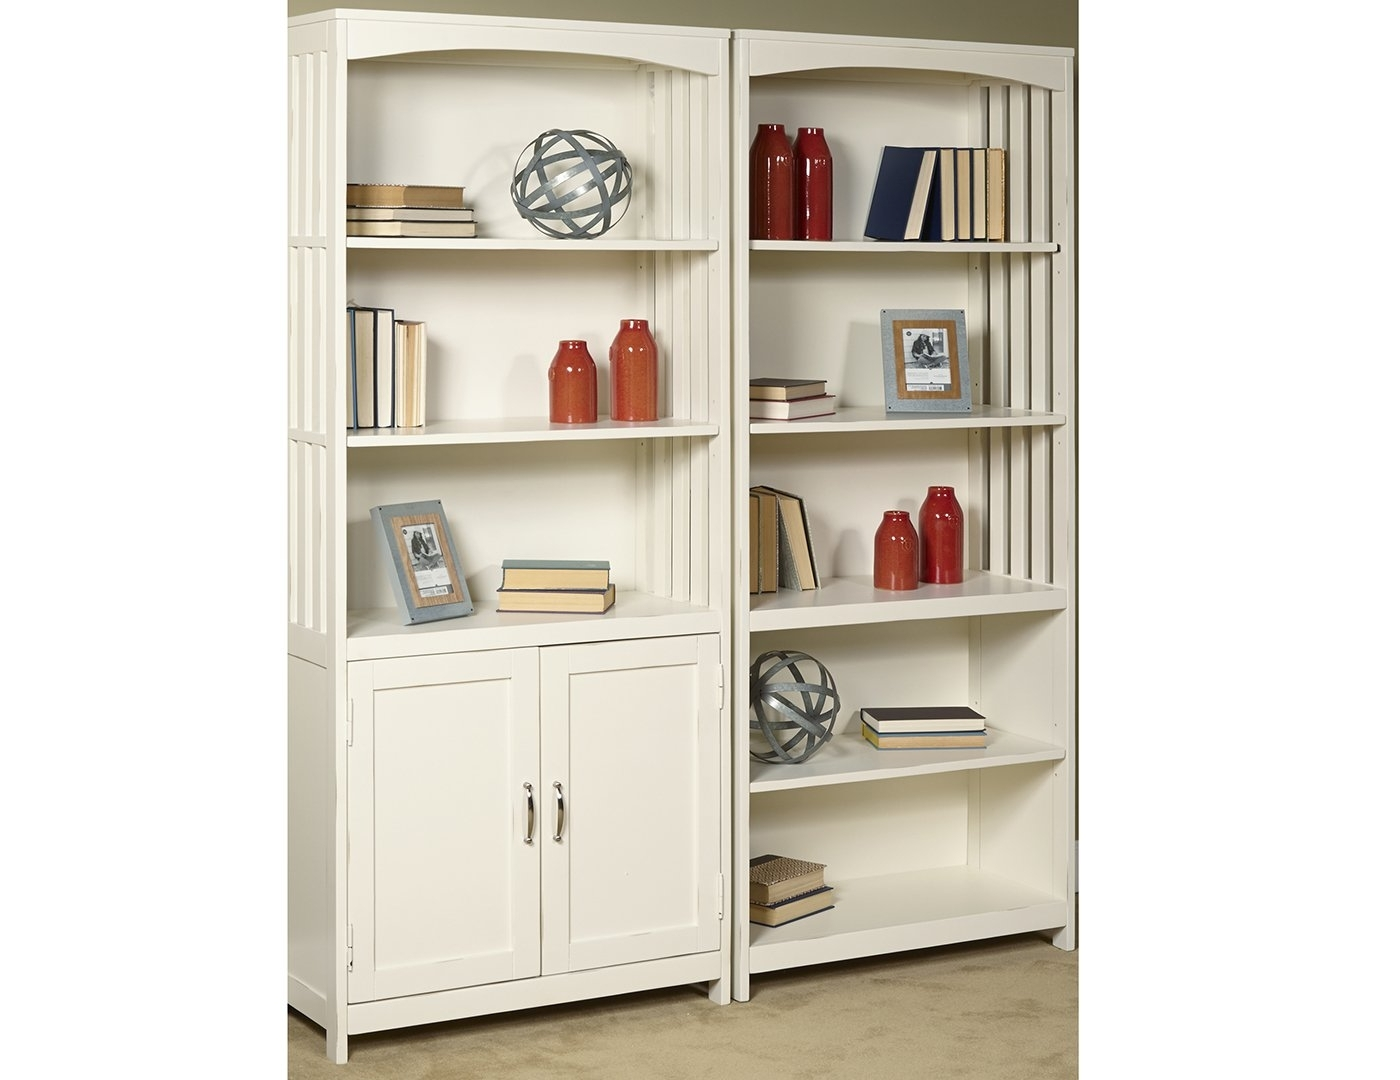 Bookcase 35 Excellent With Cupboards Under Image Inspirations Within Widely Used Bookcases With Cupboard Under (View 6 of 15)